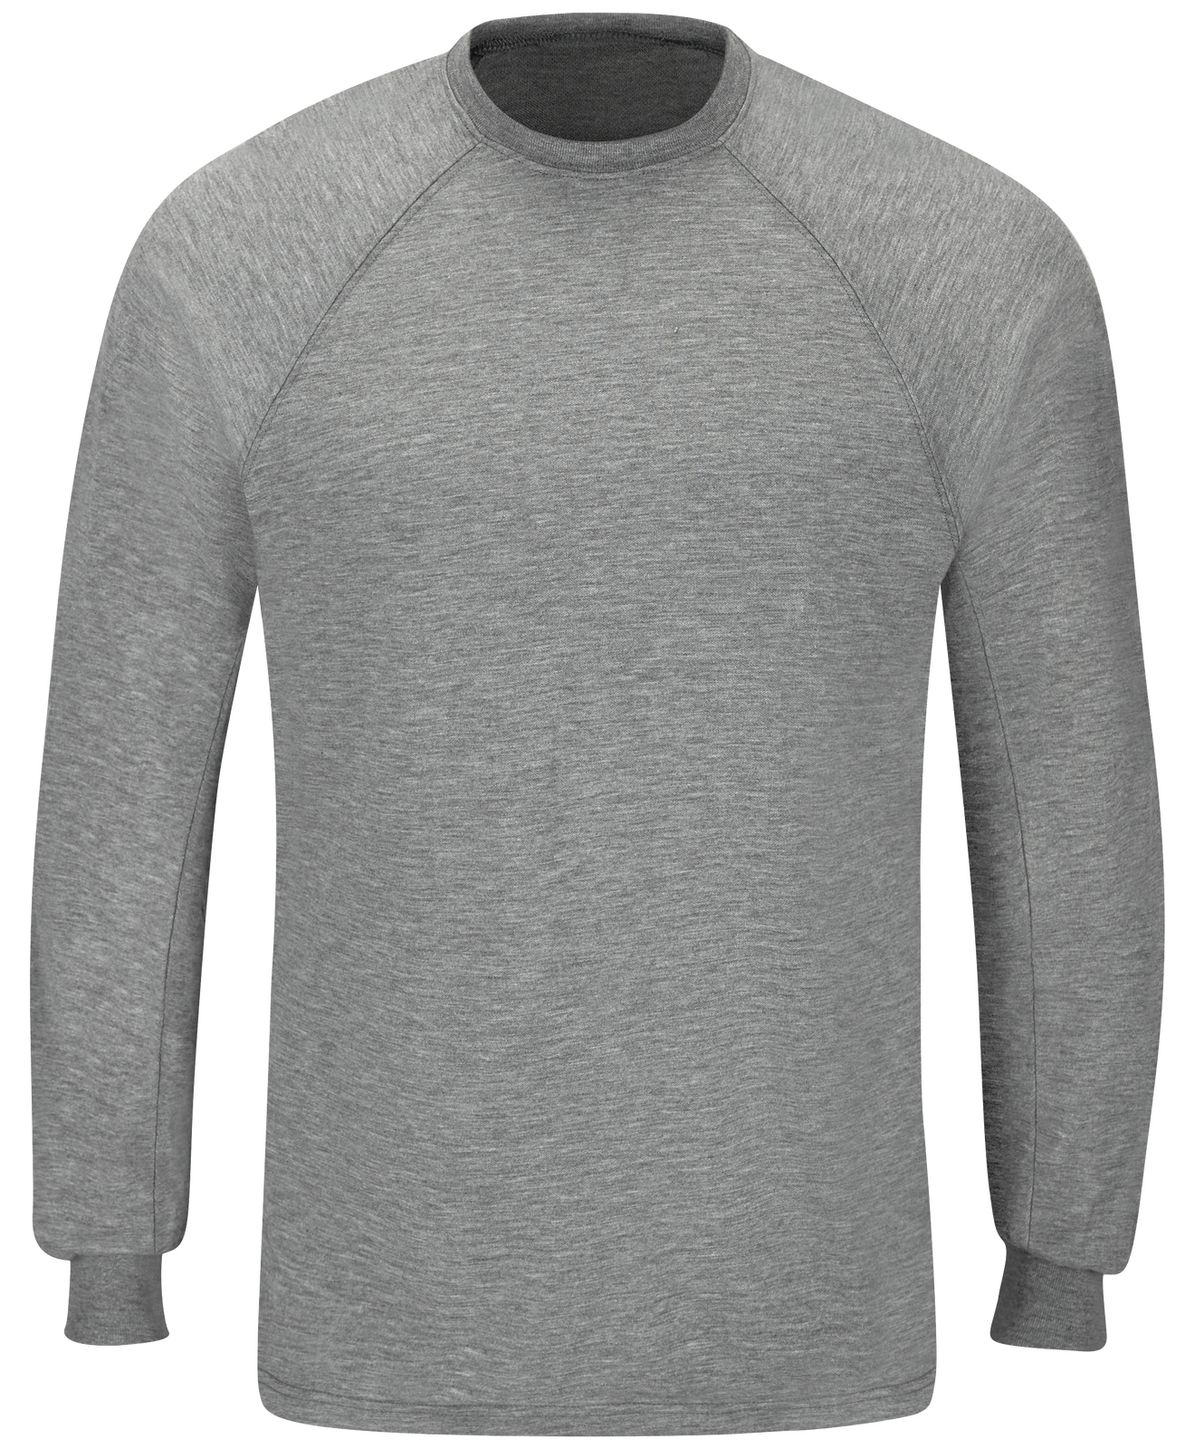 workrite-fr-long-sleeve-ft40-station-wear-tee-athletic-style-heather-grey-front.jpg